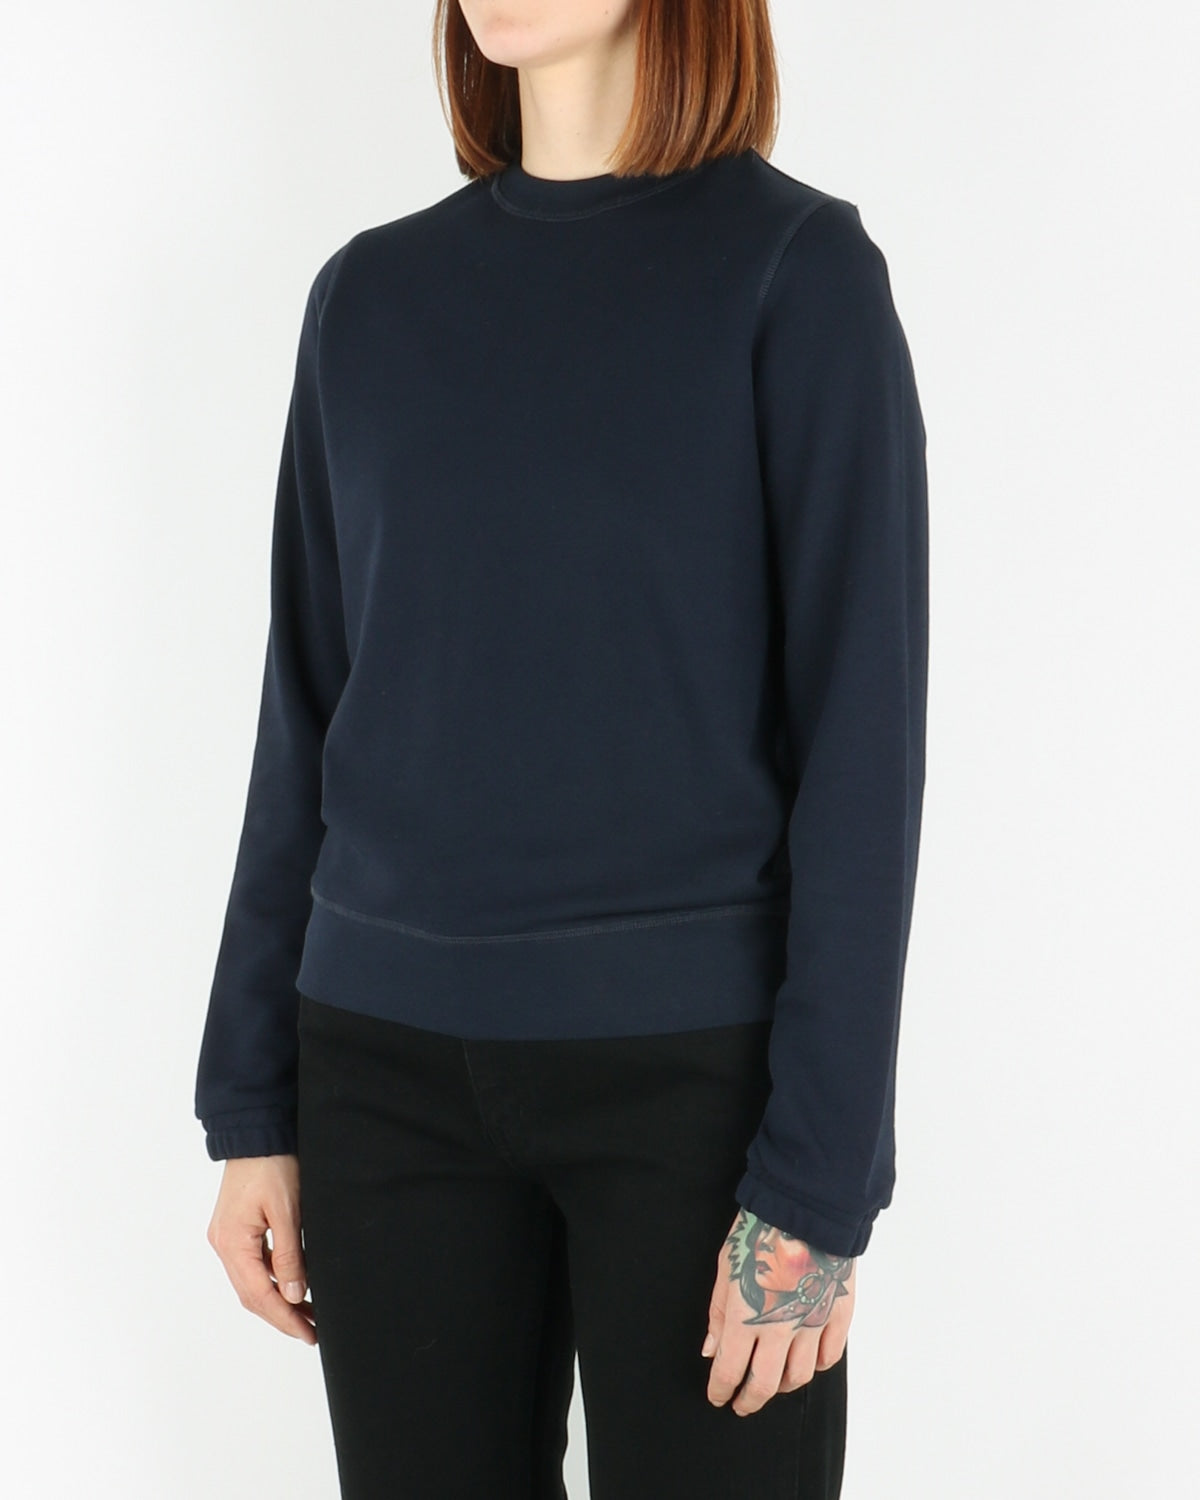 norse projects_elena sweat_dark navy_view_2_3